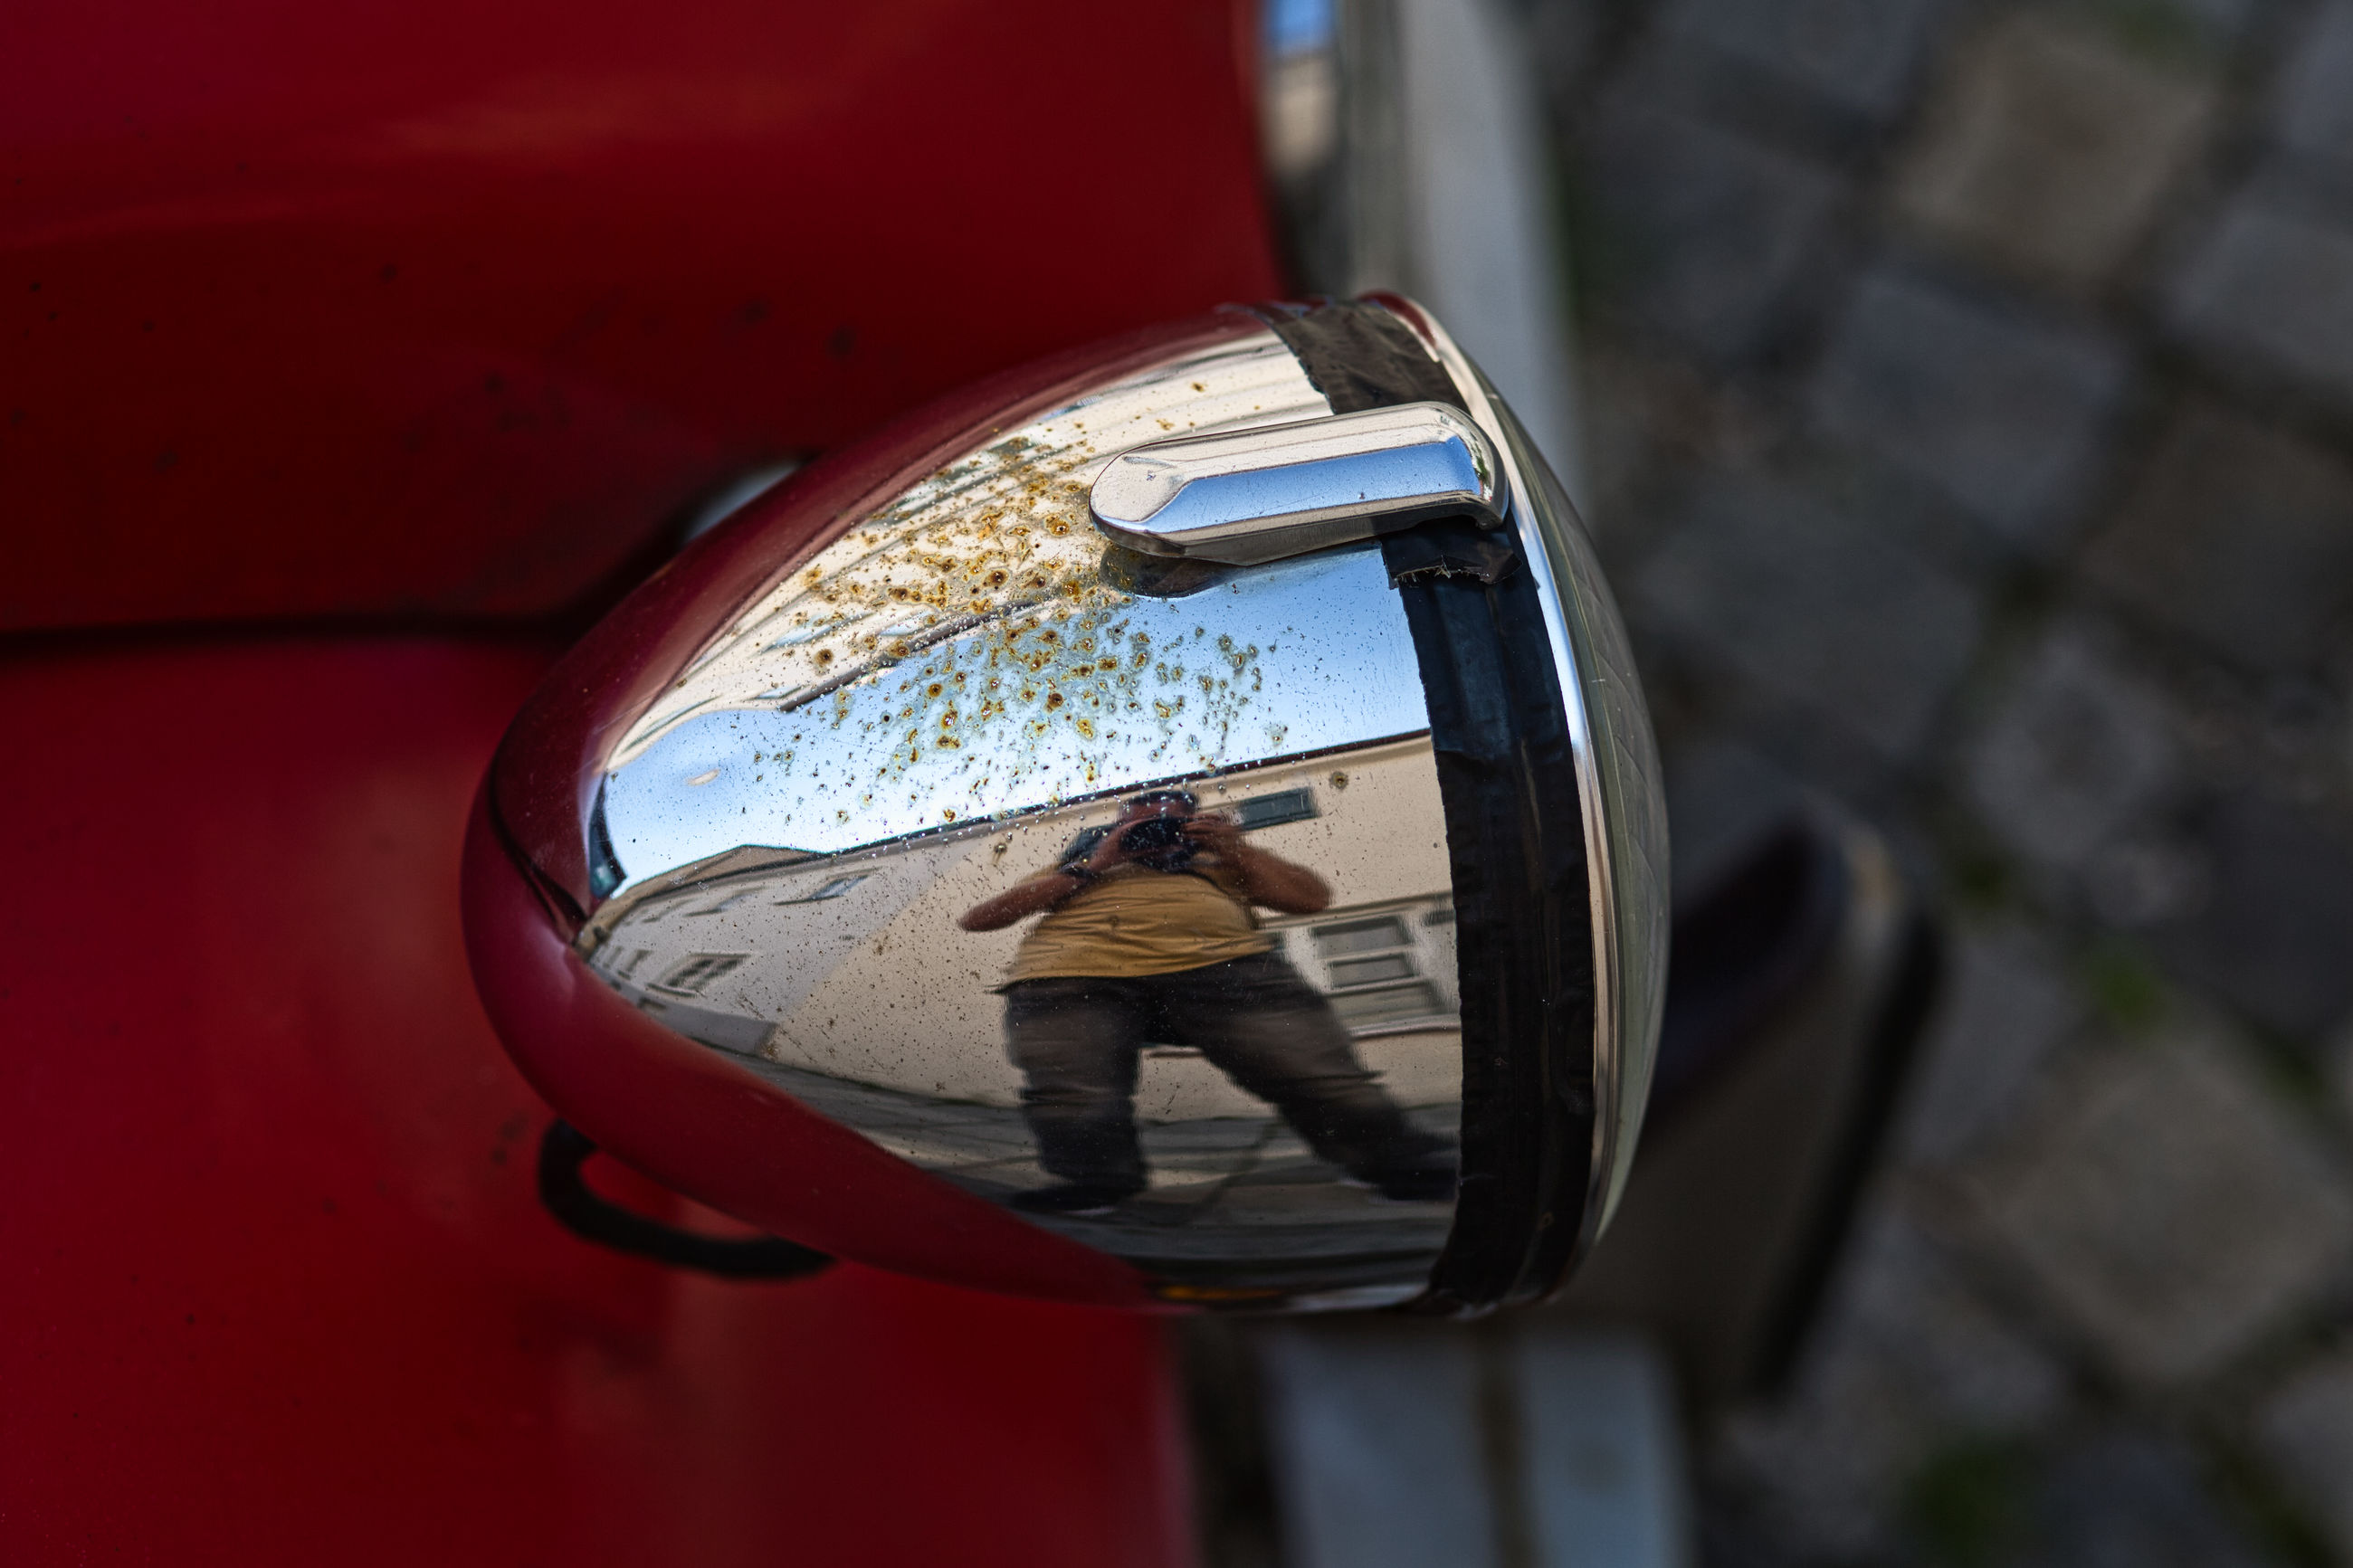 HIGH ANGLE VIEW OF PERSON PHOTOGRAPHING THROUGH CAR